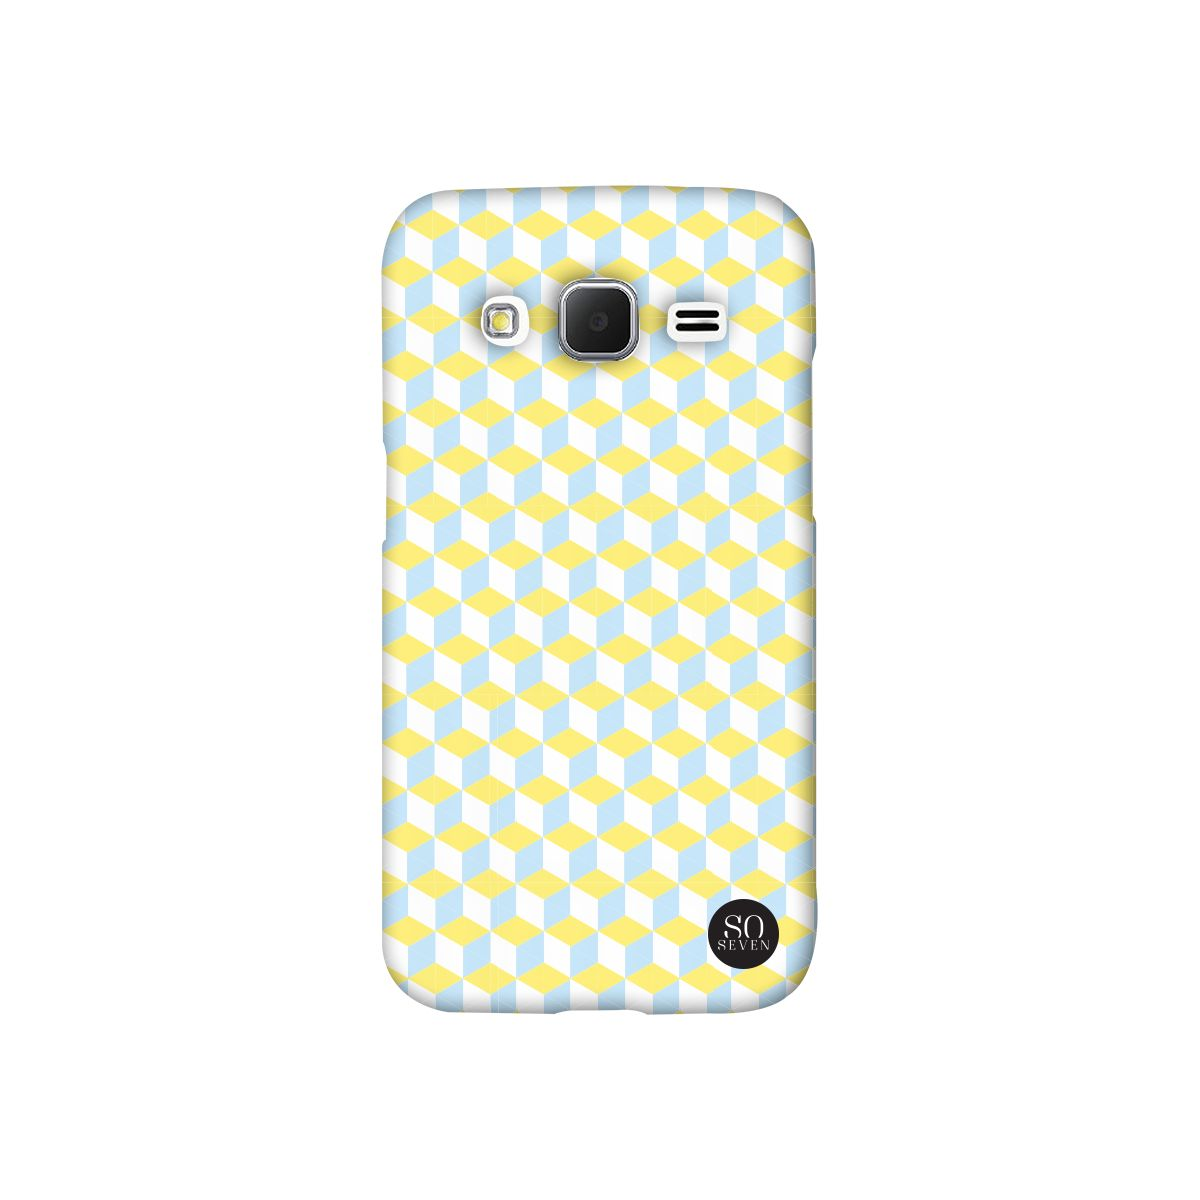 Coque SO SEVEN iPhone 6/6S Retro Cubic vert jaune